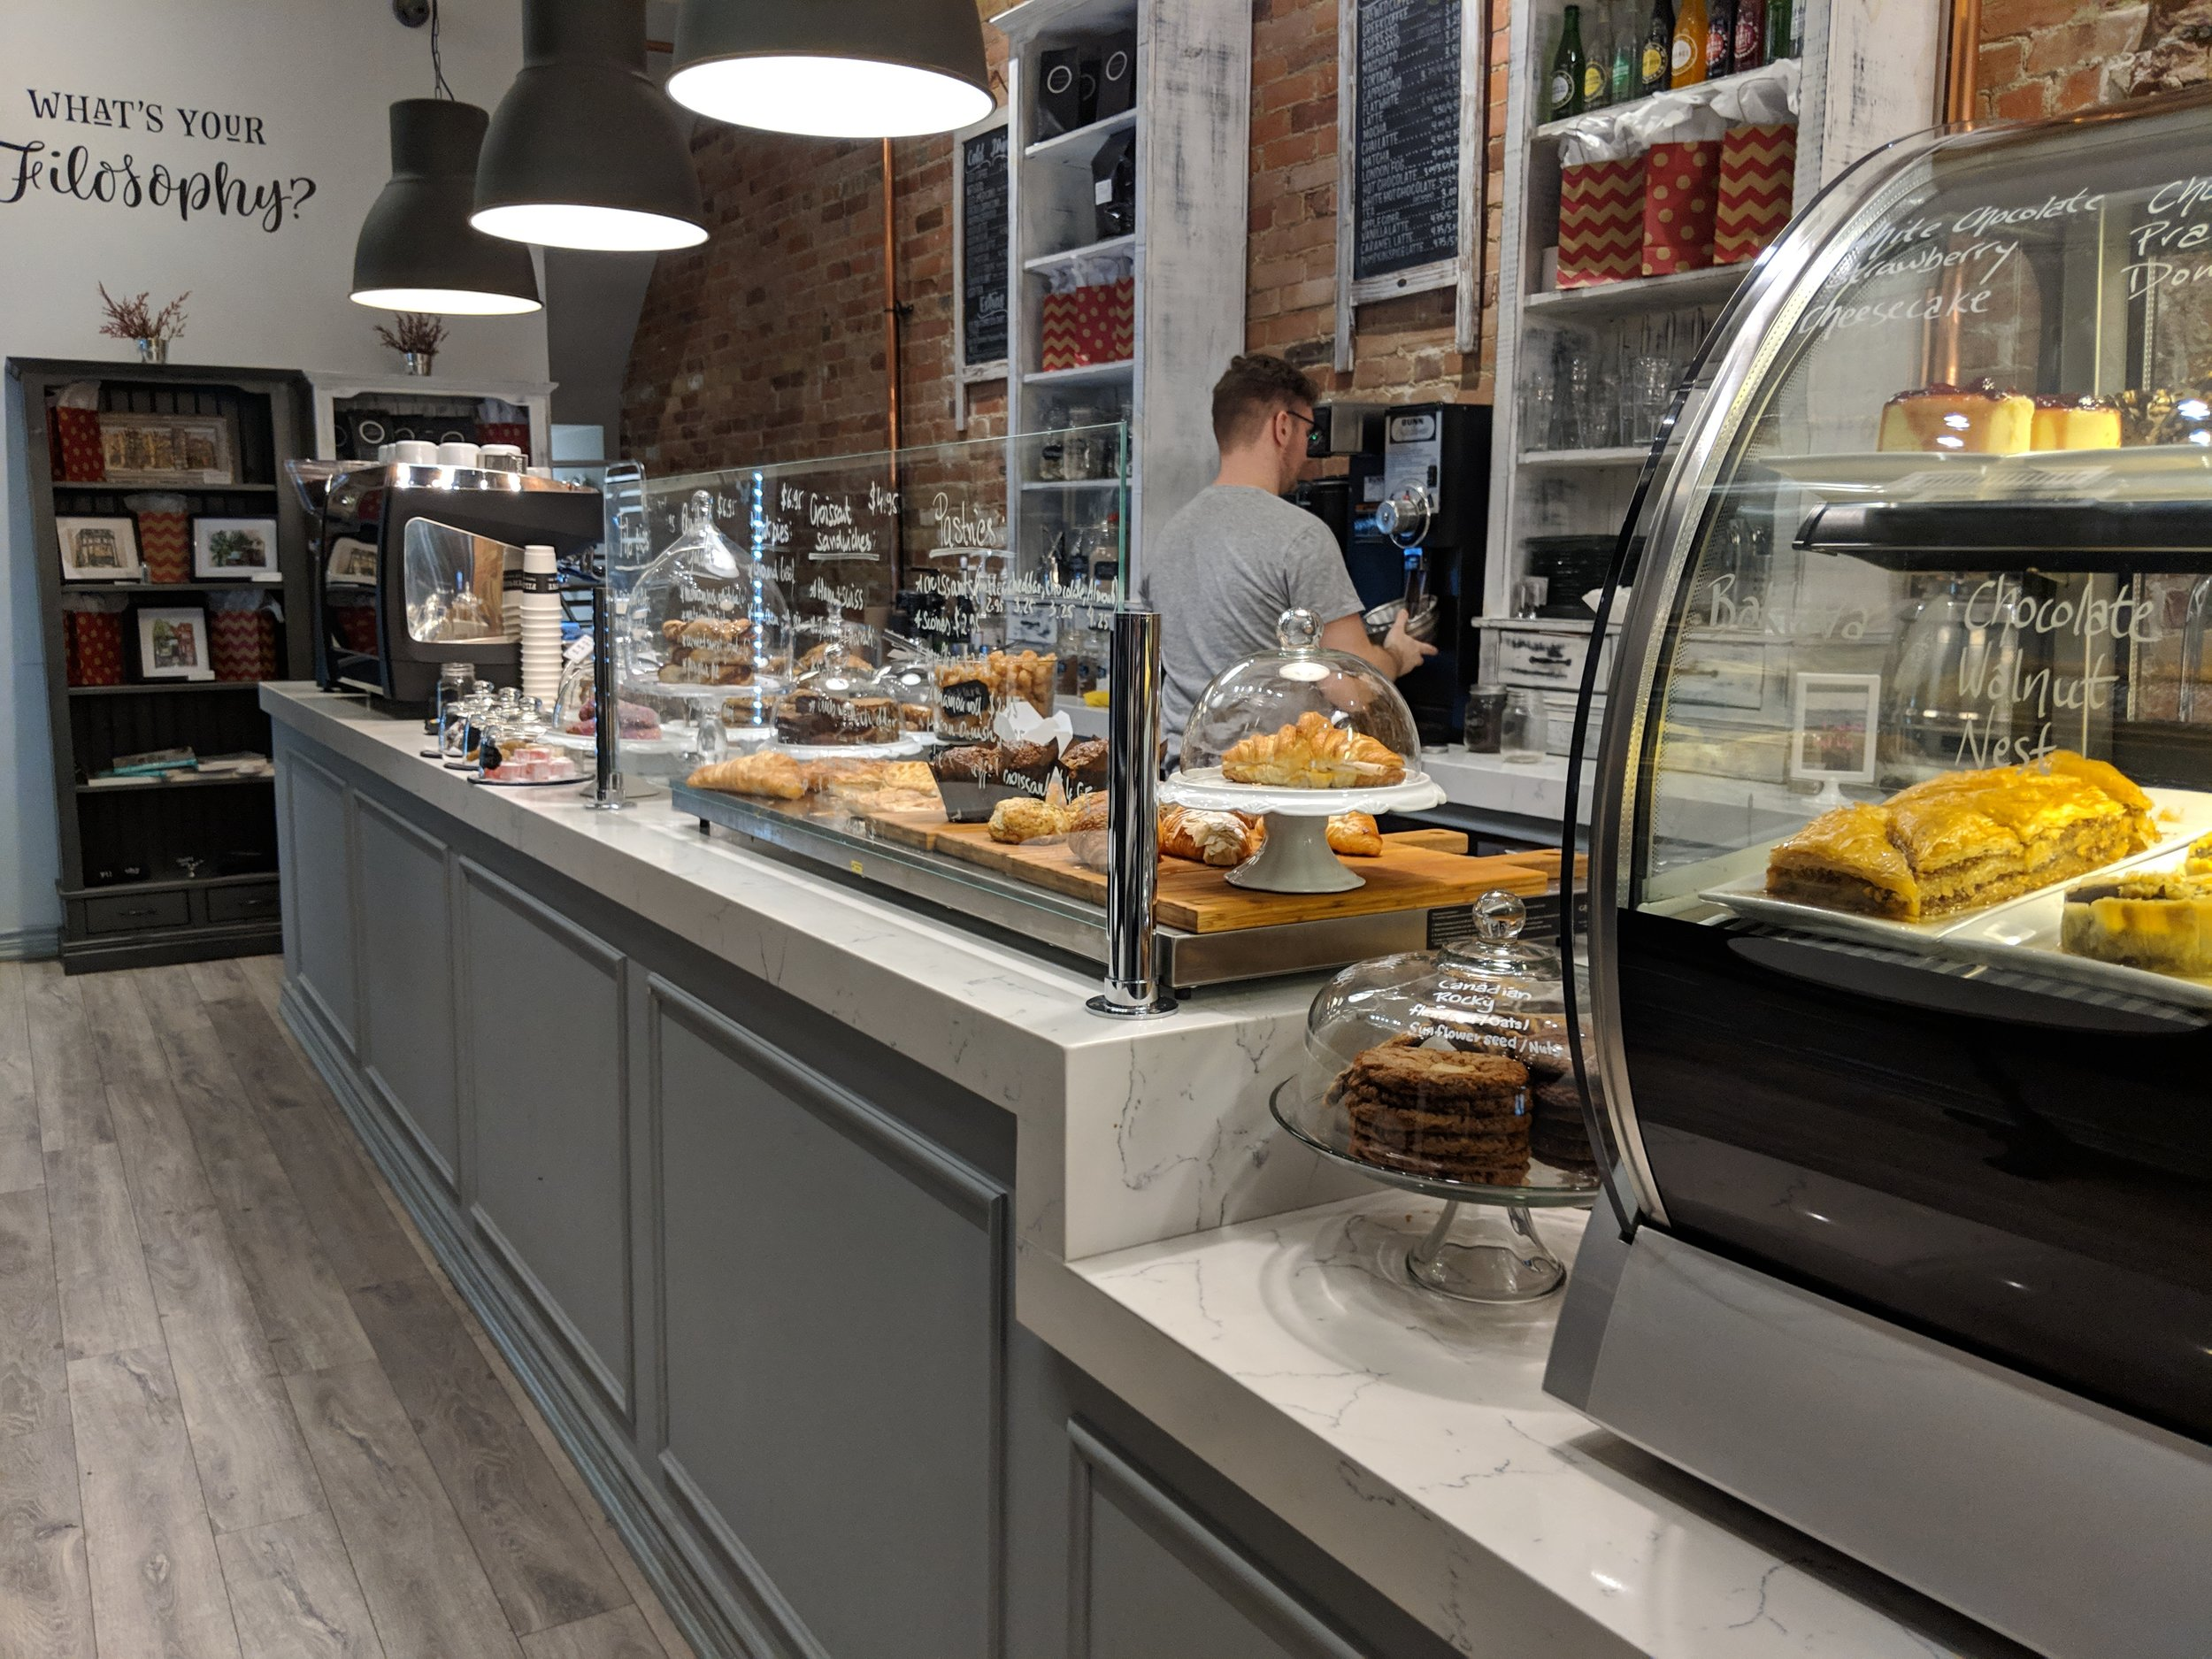 Picture of service counter in Filosophy Pastry and Espresso Bar